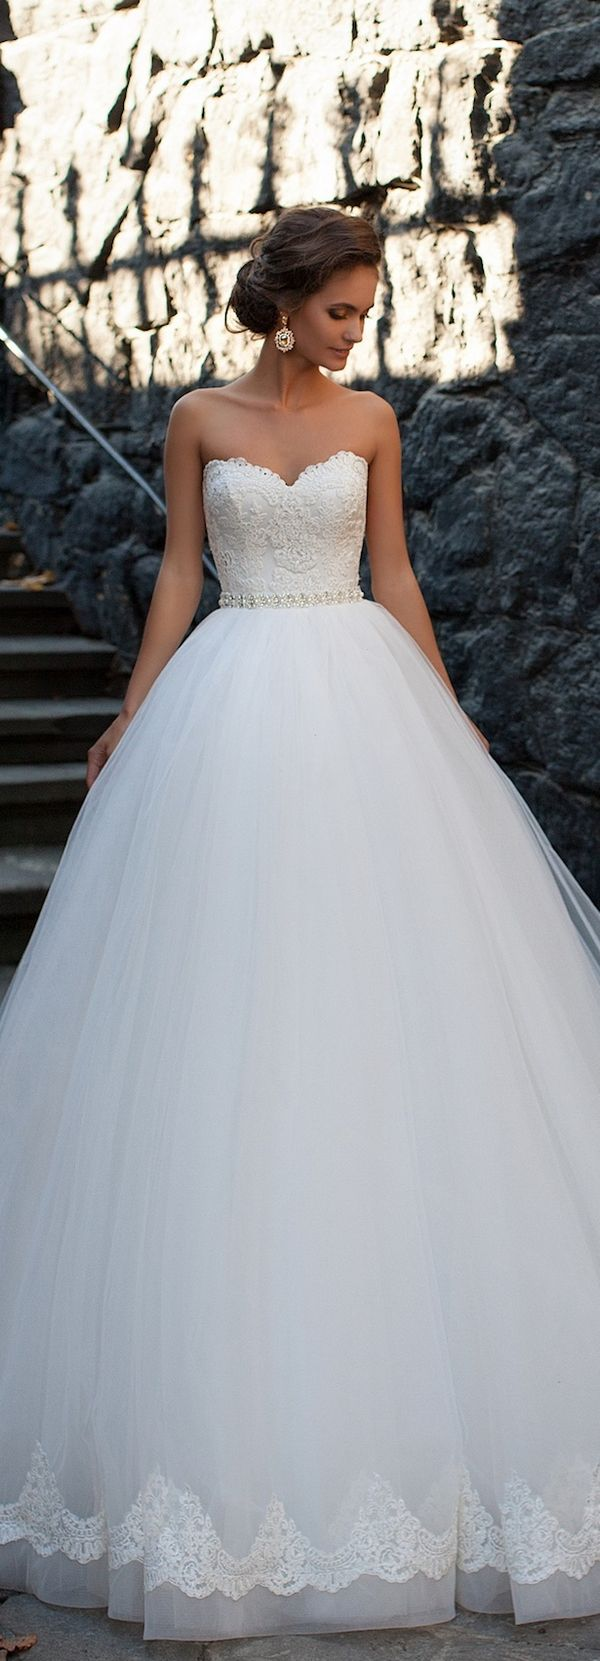 milla nova 2016 bridal wedding dresses / http://www.deerpearlflowers ...